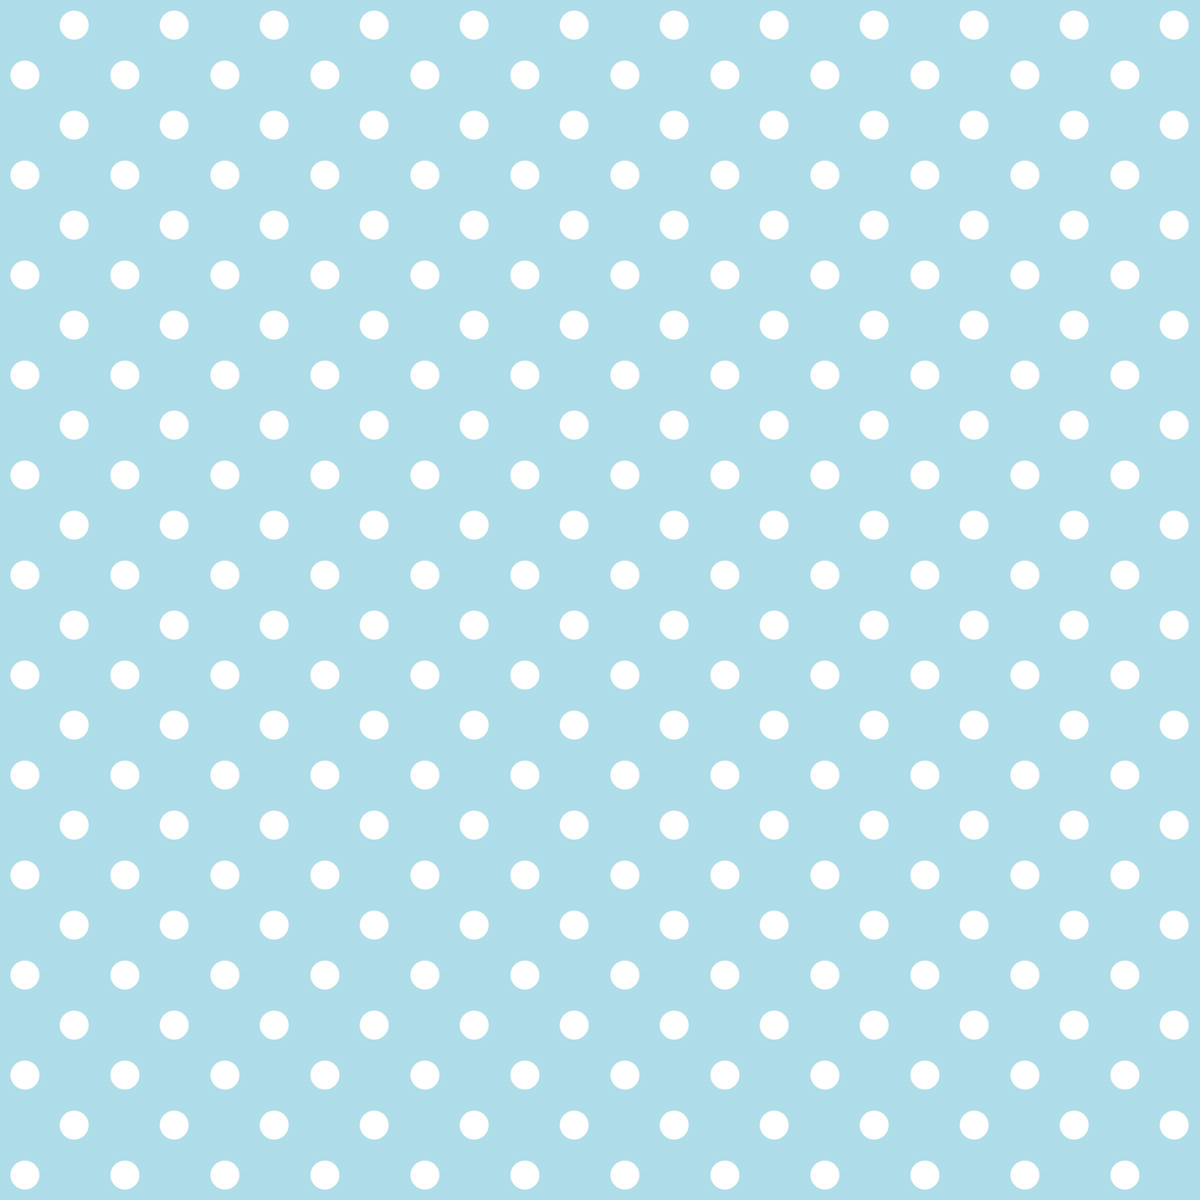 Baby Patterns : ... polka dot scrapbooking paper: baby blue - P?nktchenpapier - freebie